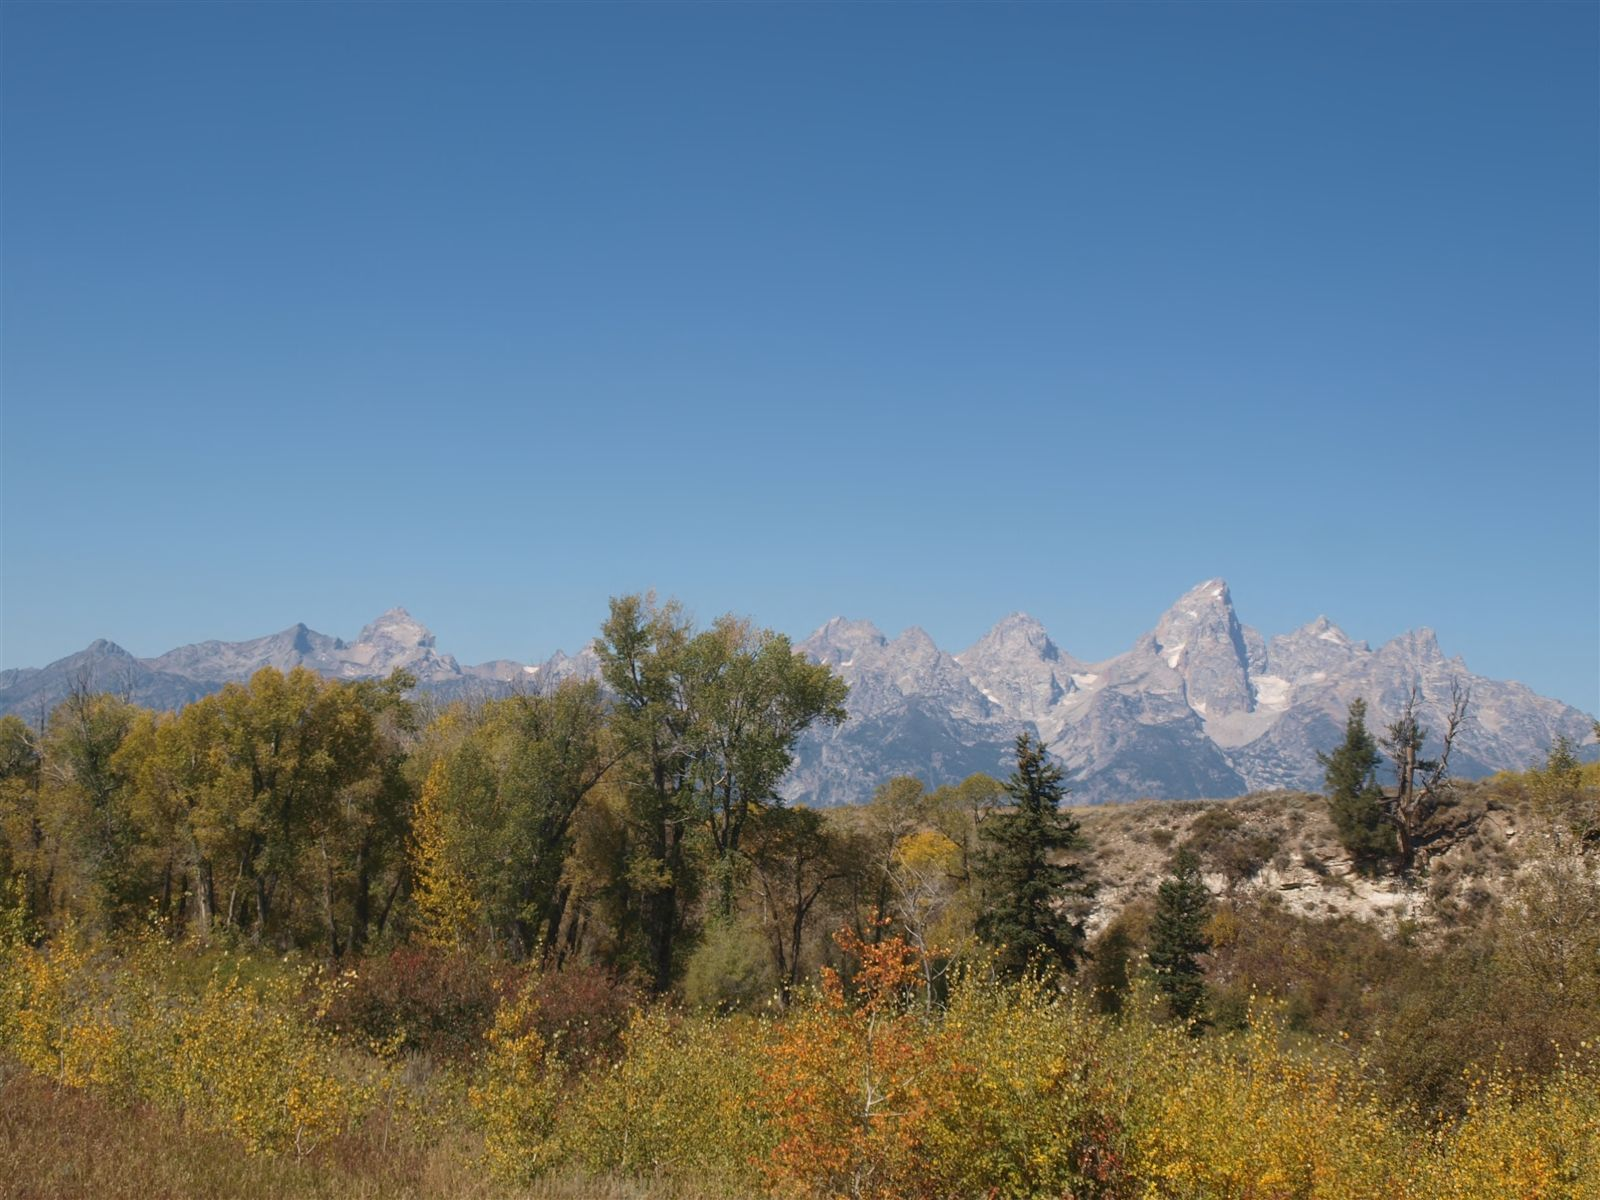 September 12, 2015 View From Tetons Science Center, Grand